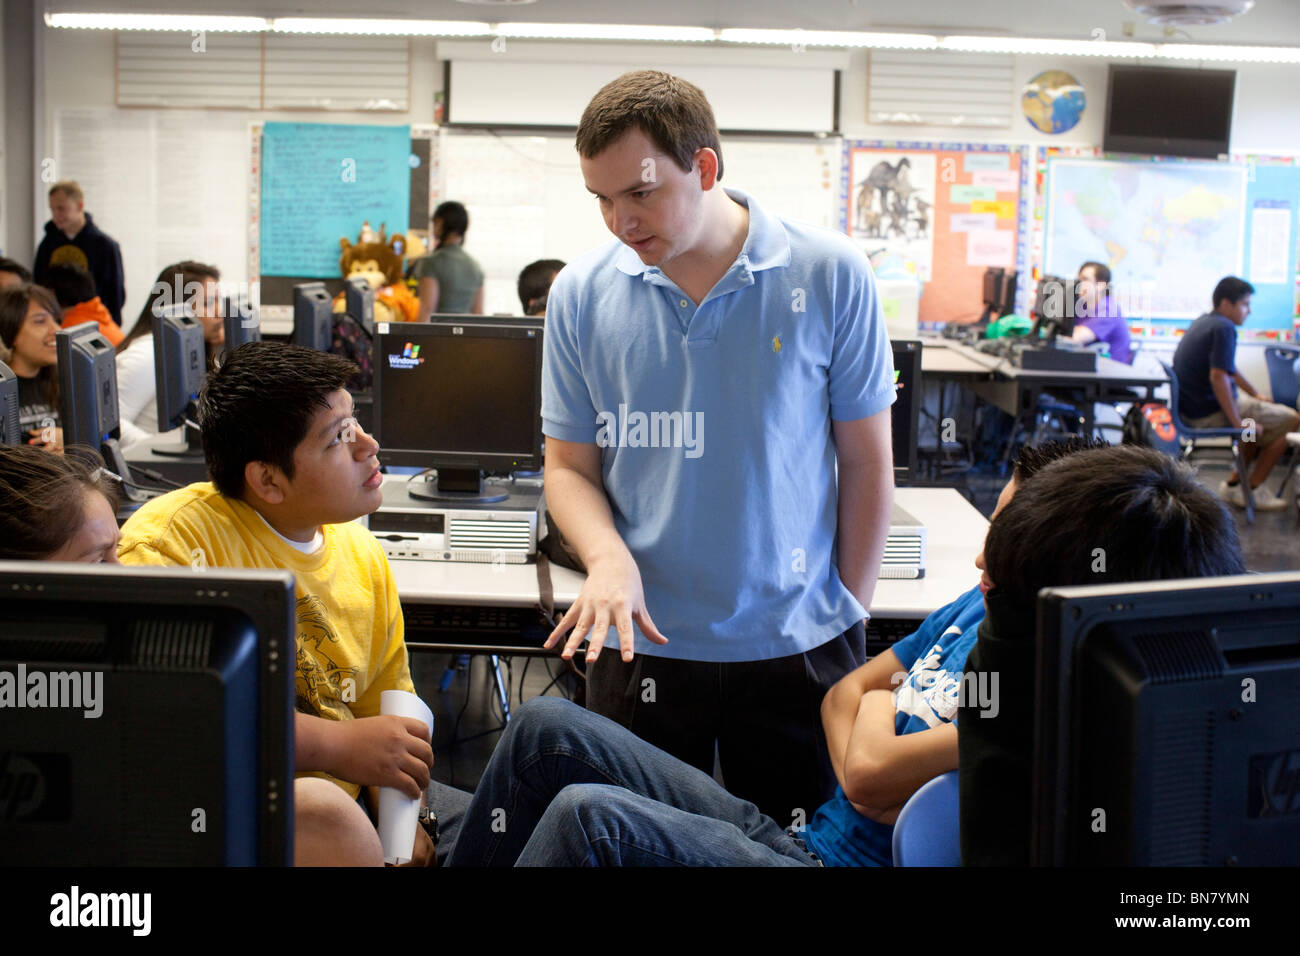 Anglo male high school English teacher talks to  students in classroom Stock Photo